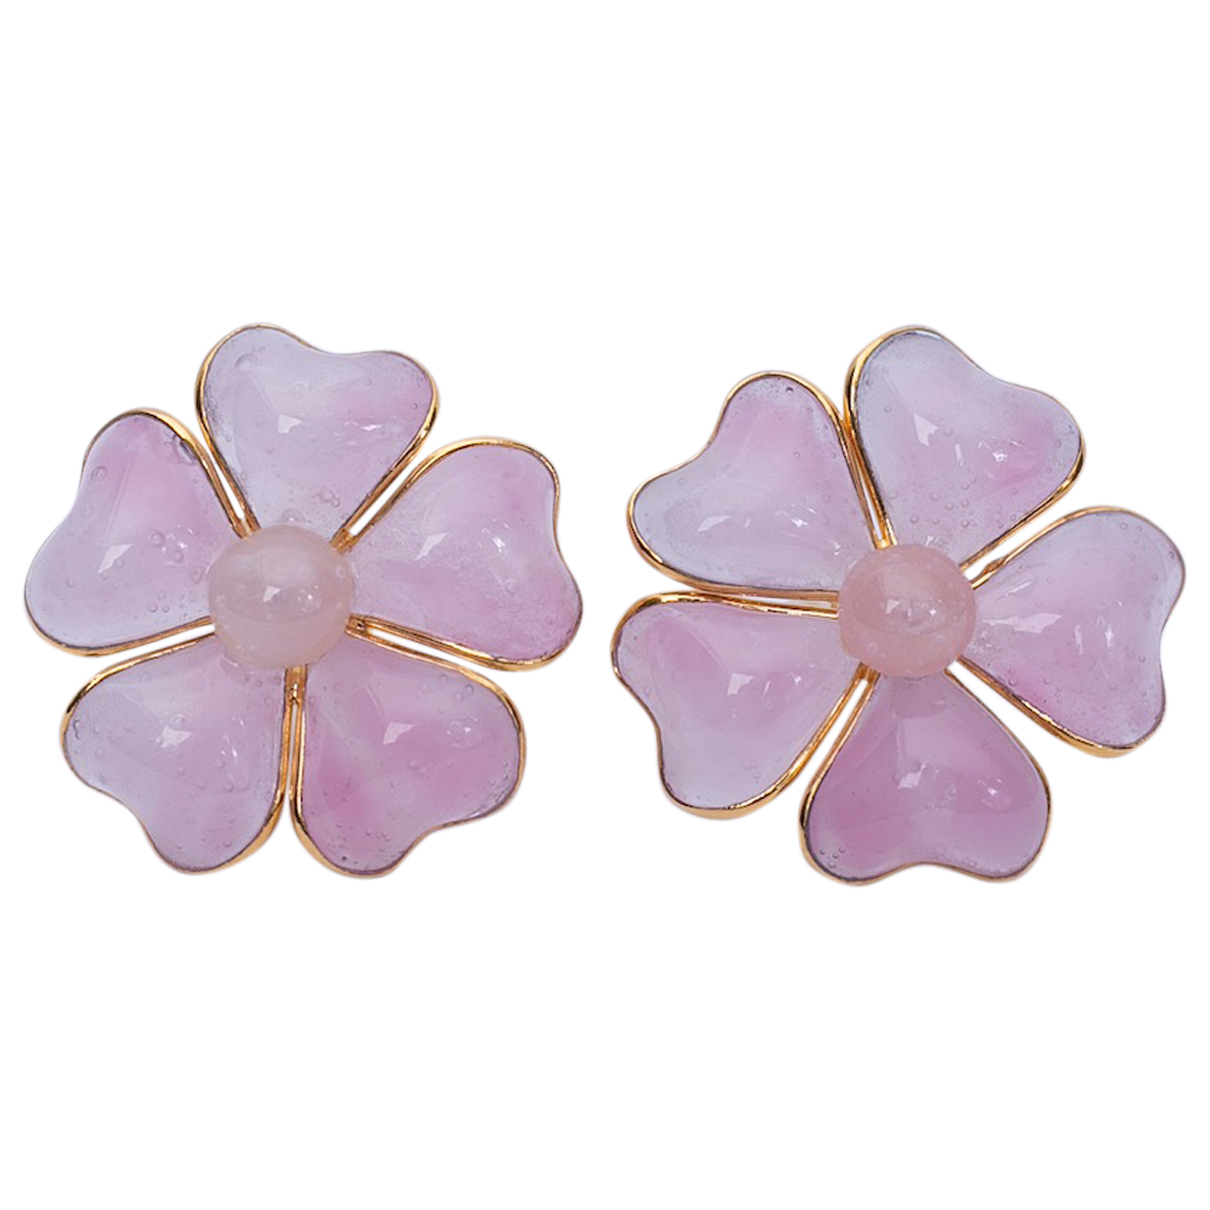 Non Signé / Unsigned Motifs Floraux Pink Glass Earrings for Women N